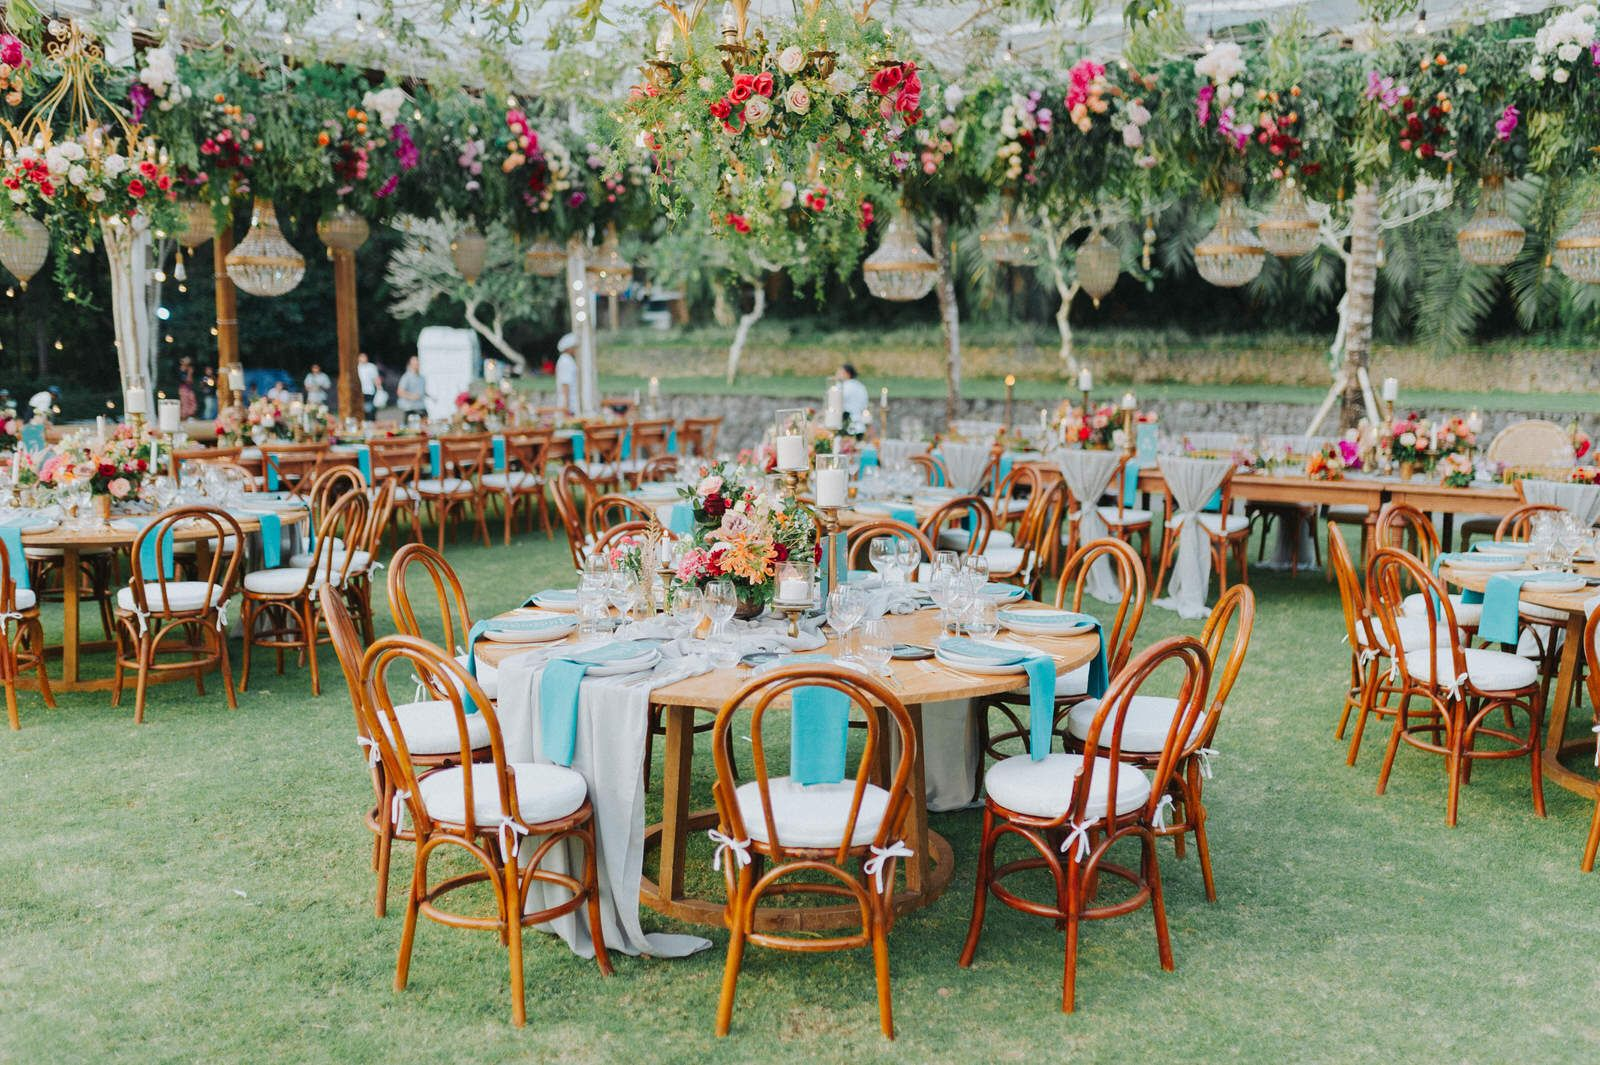 10 Best Wedding Venues In The World You Will Love Best Wedding Venues Wedding Venues Wedding Venue Decorations